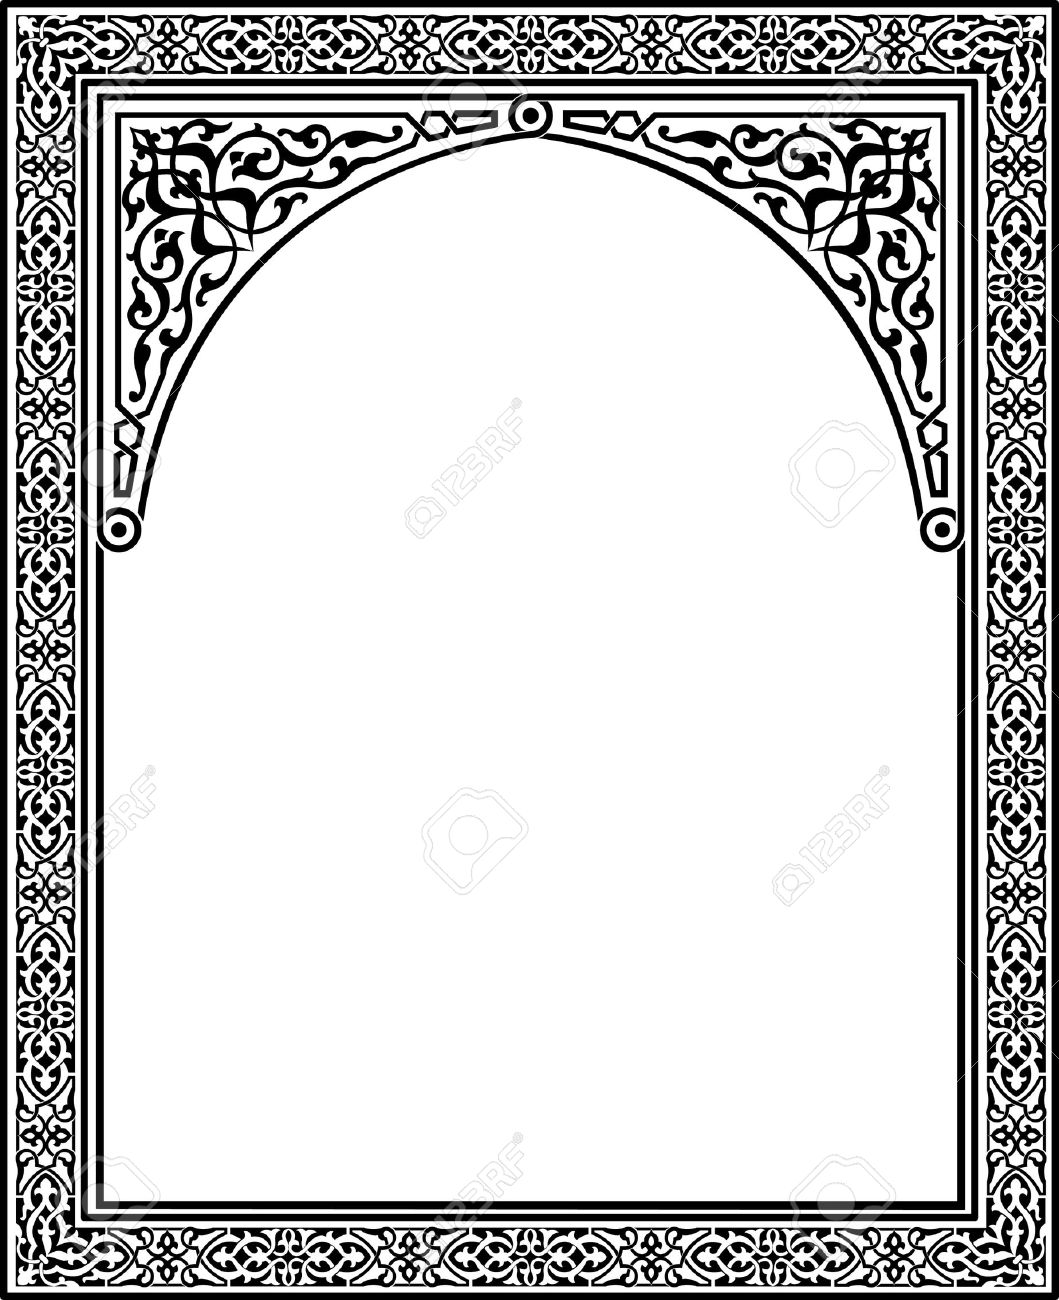 Islamic arabesque style border frame with flourish ornament islamic arabesque style border frame with flourish ornament monochrome stock vector 23185784 thecheapjerseys Image collections